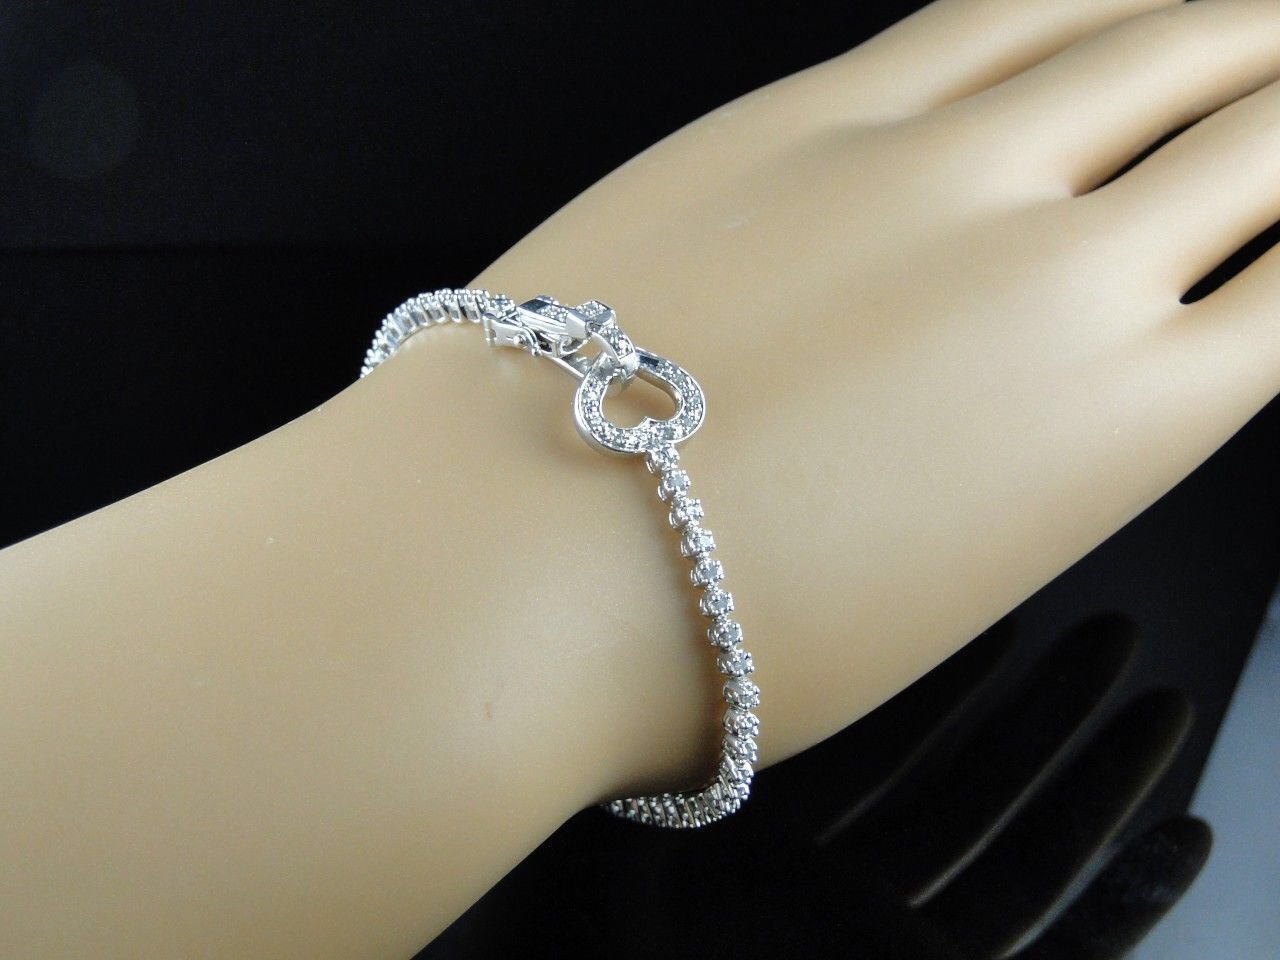 diamonds yurman single with station pin diamond bracelet starburst david